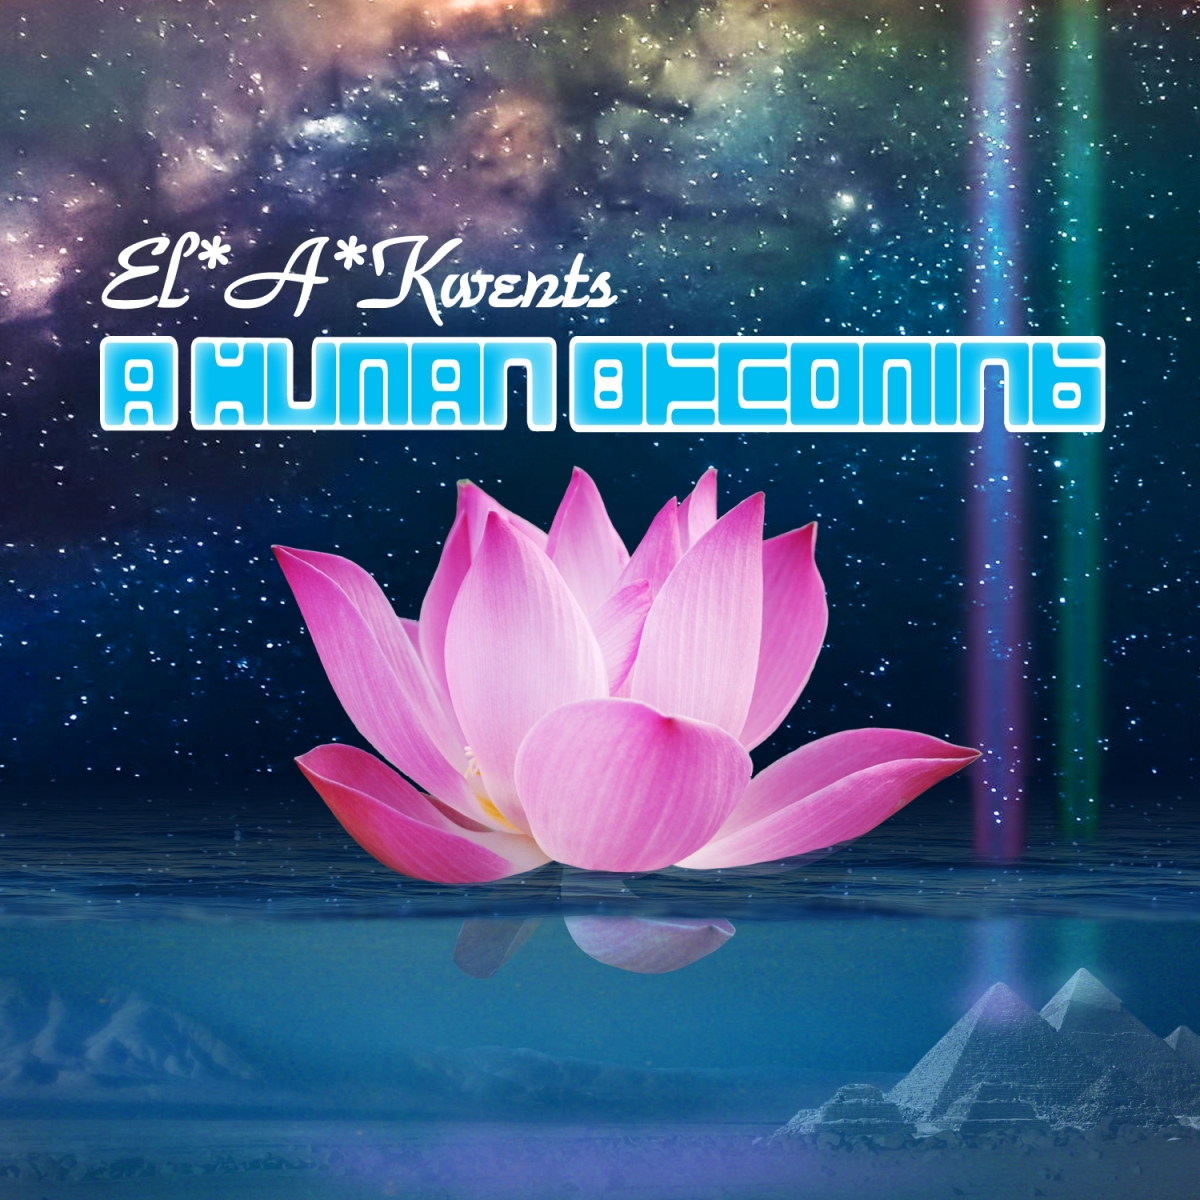 1984 RMX [Lyrics] | El*A*Kwents - A Human Becoming